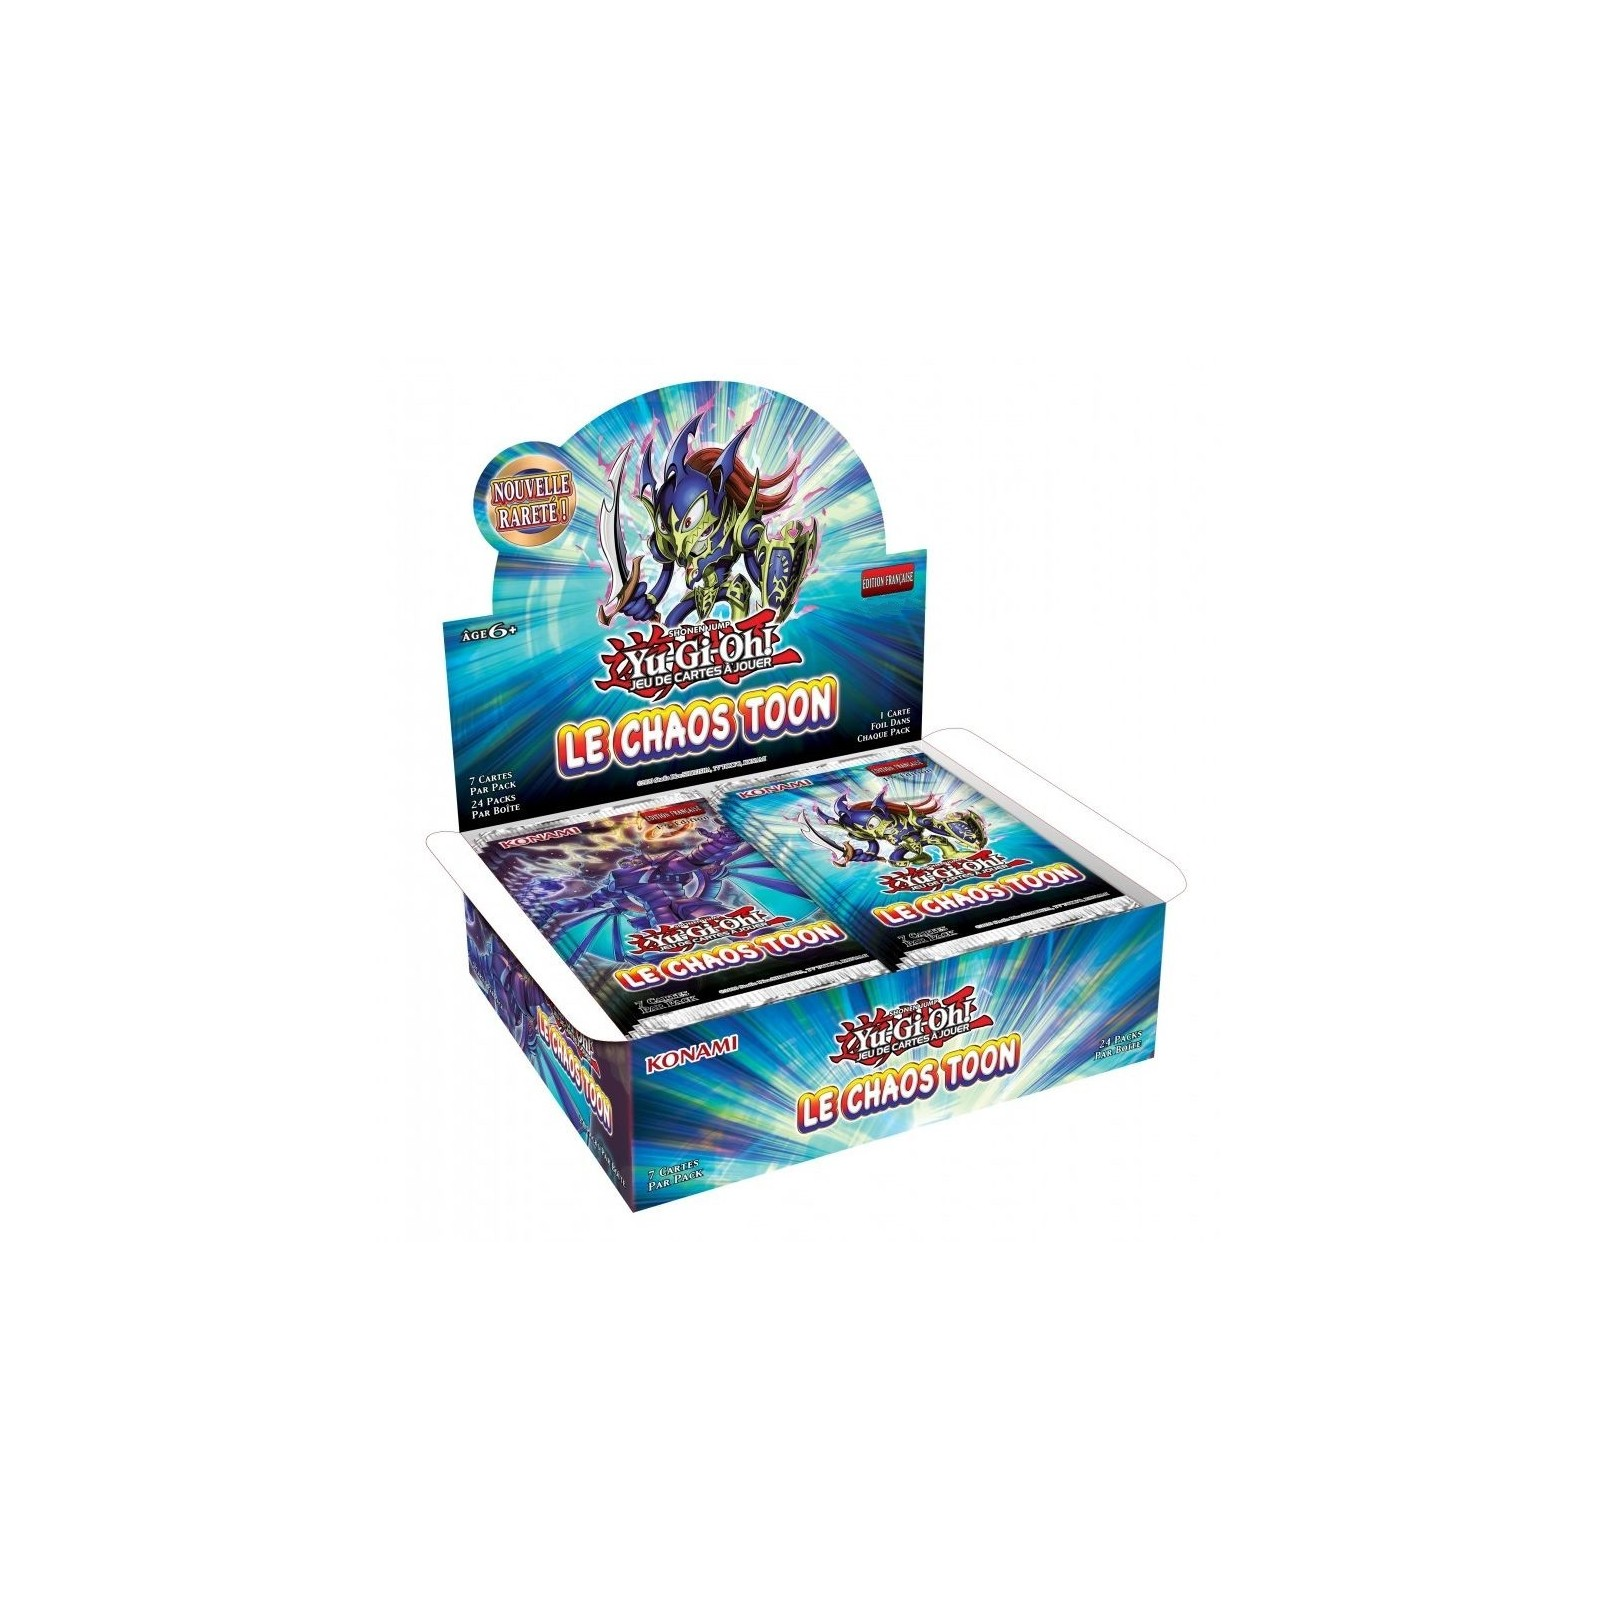 Yu-Gi-Oh! - Display - Boite de 24 Boosters - Le Chaos Toon - FR - Unlimited/Réédition